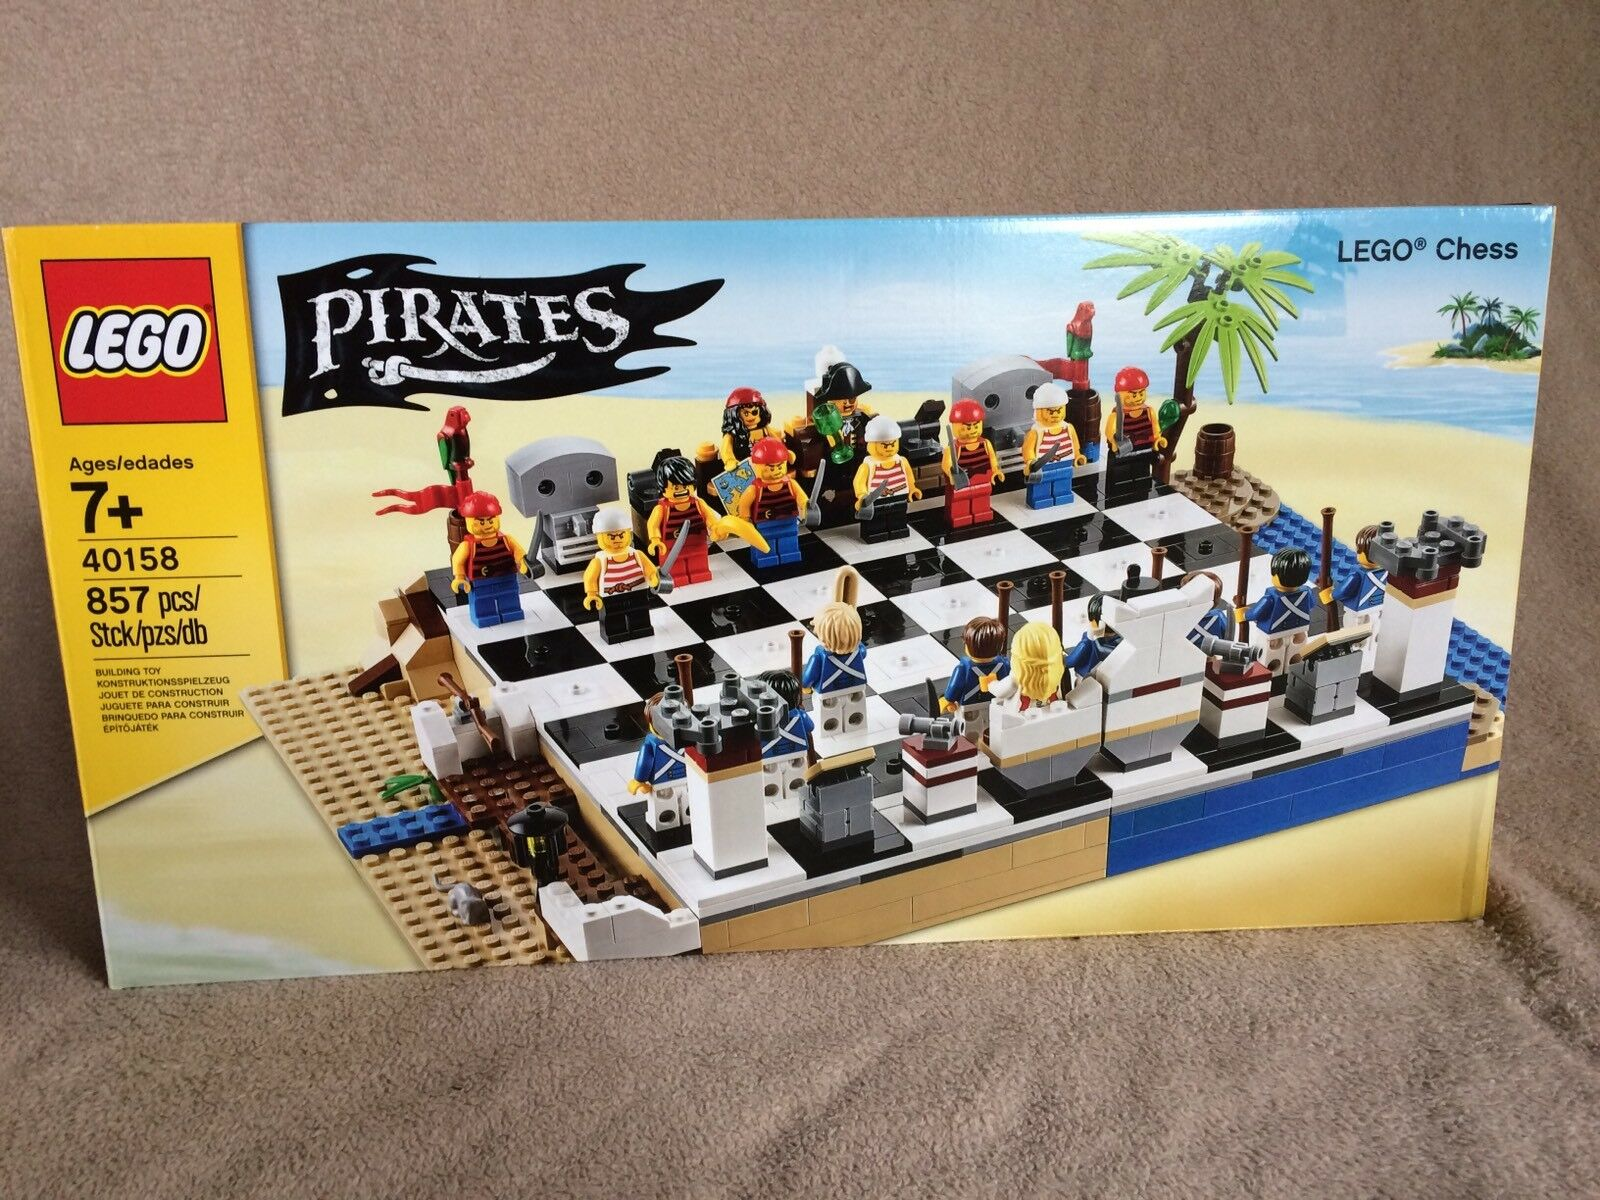 Lego  Chess  Set 40158 Pirates 20 Minicifras re regina SOLDIERS nuovo 857 pcs  80% di sconto